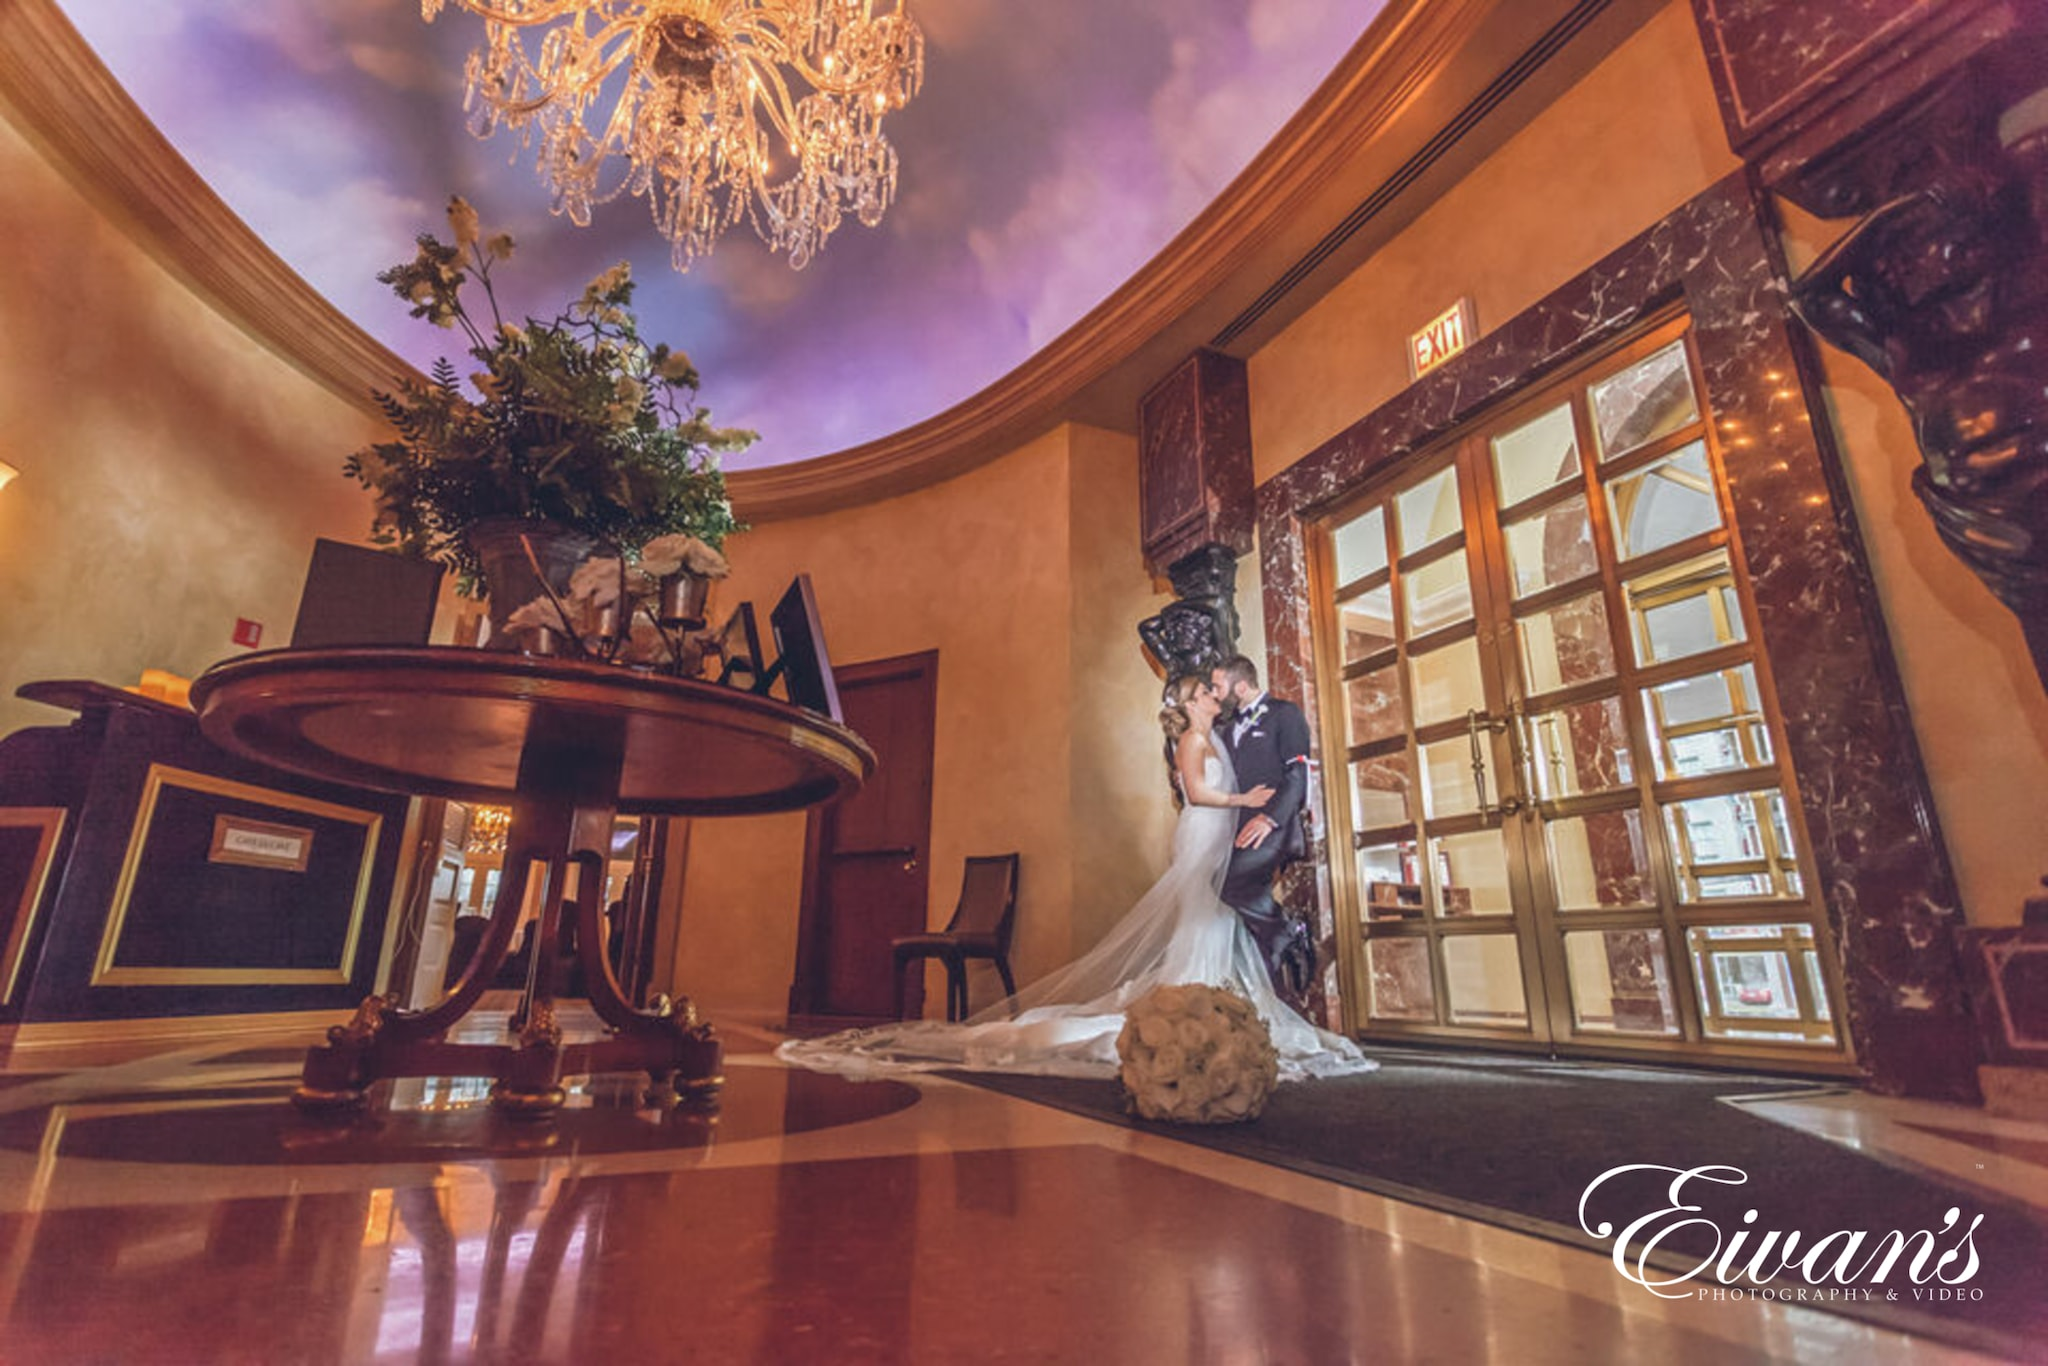 image of a married couple in a hotel lobby